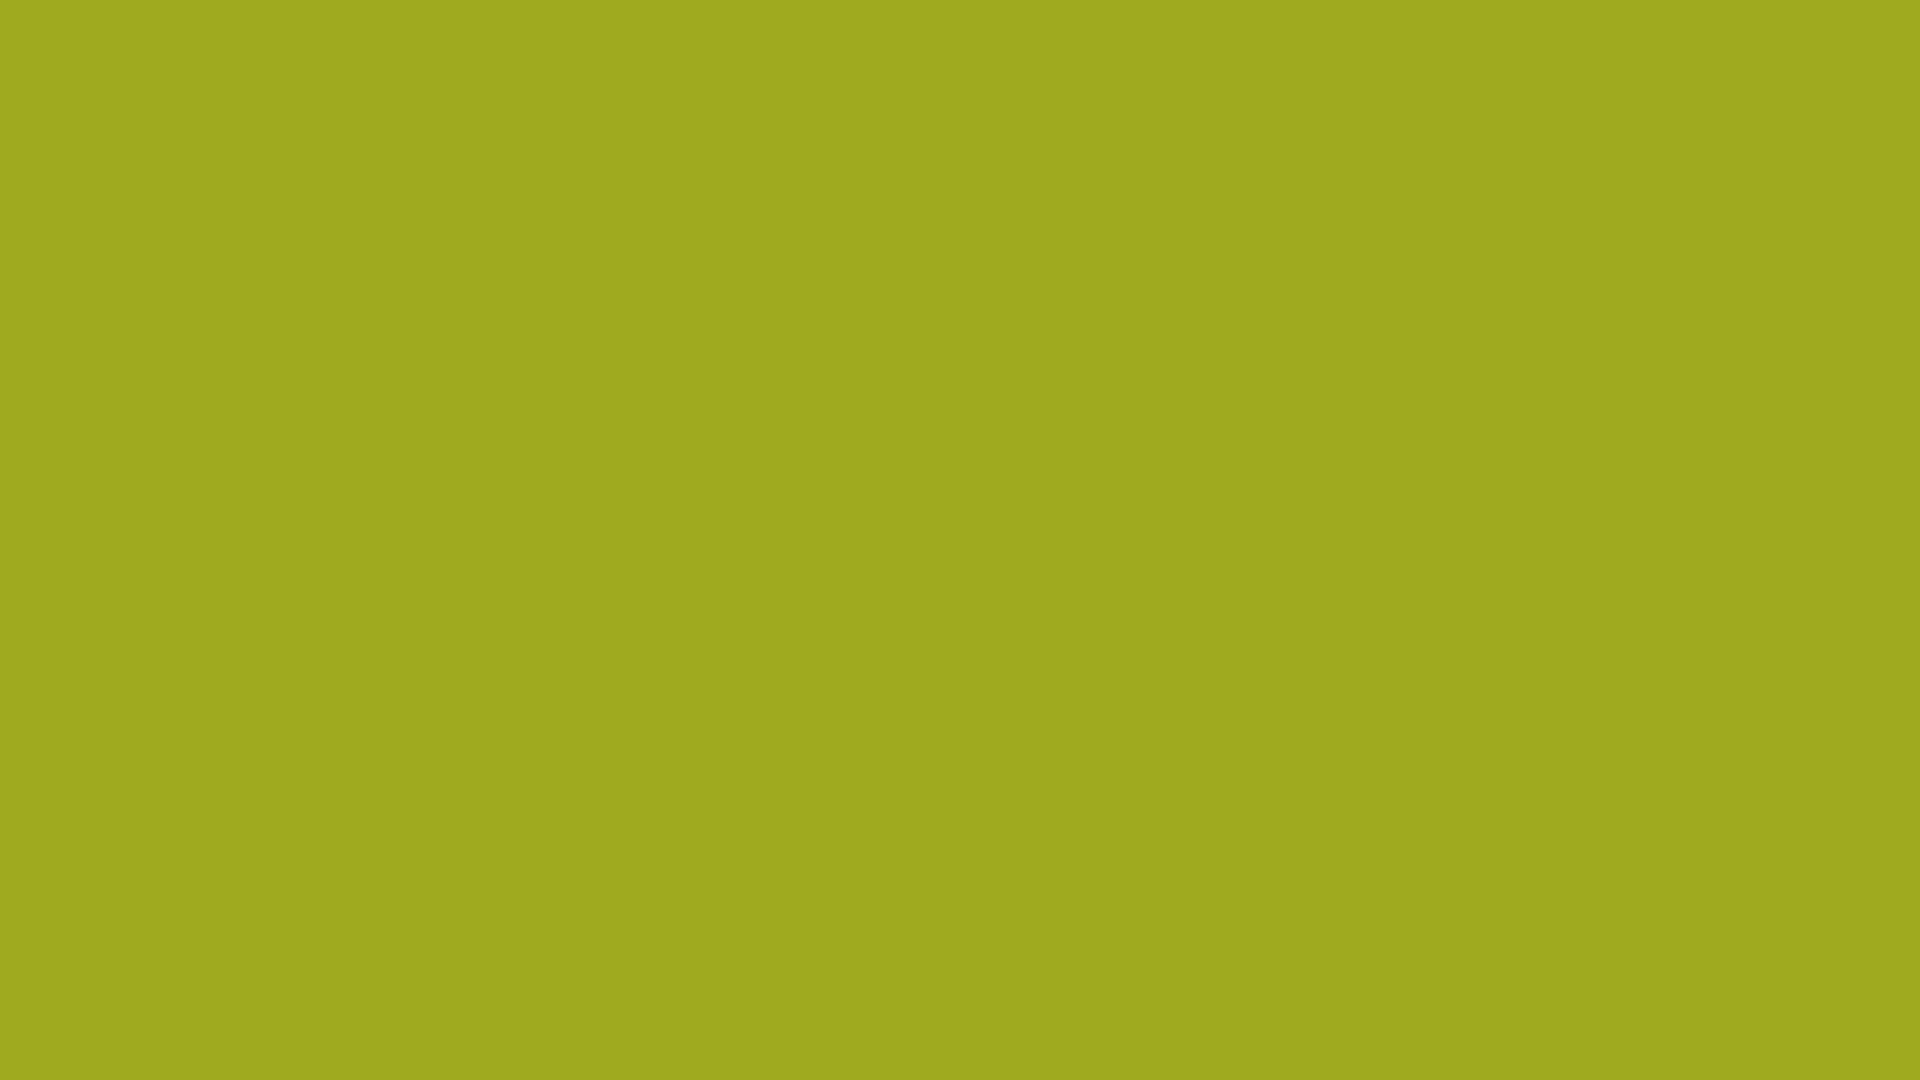 1920x1080 Citron Solid Color Background